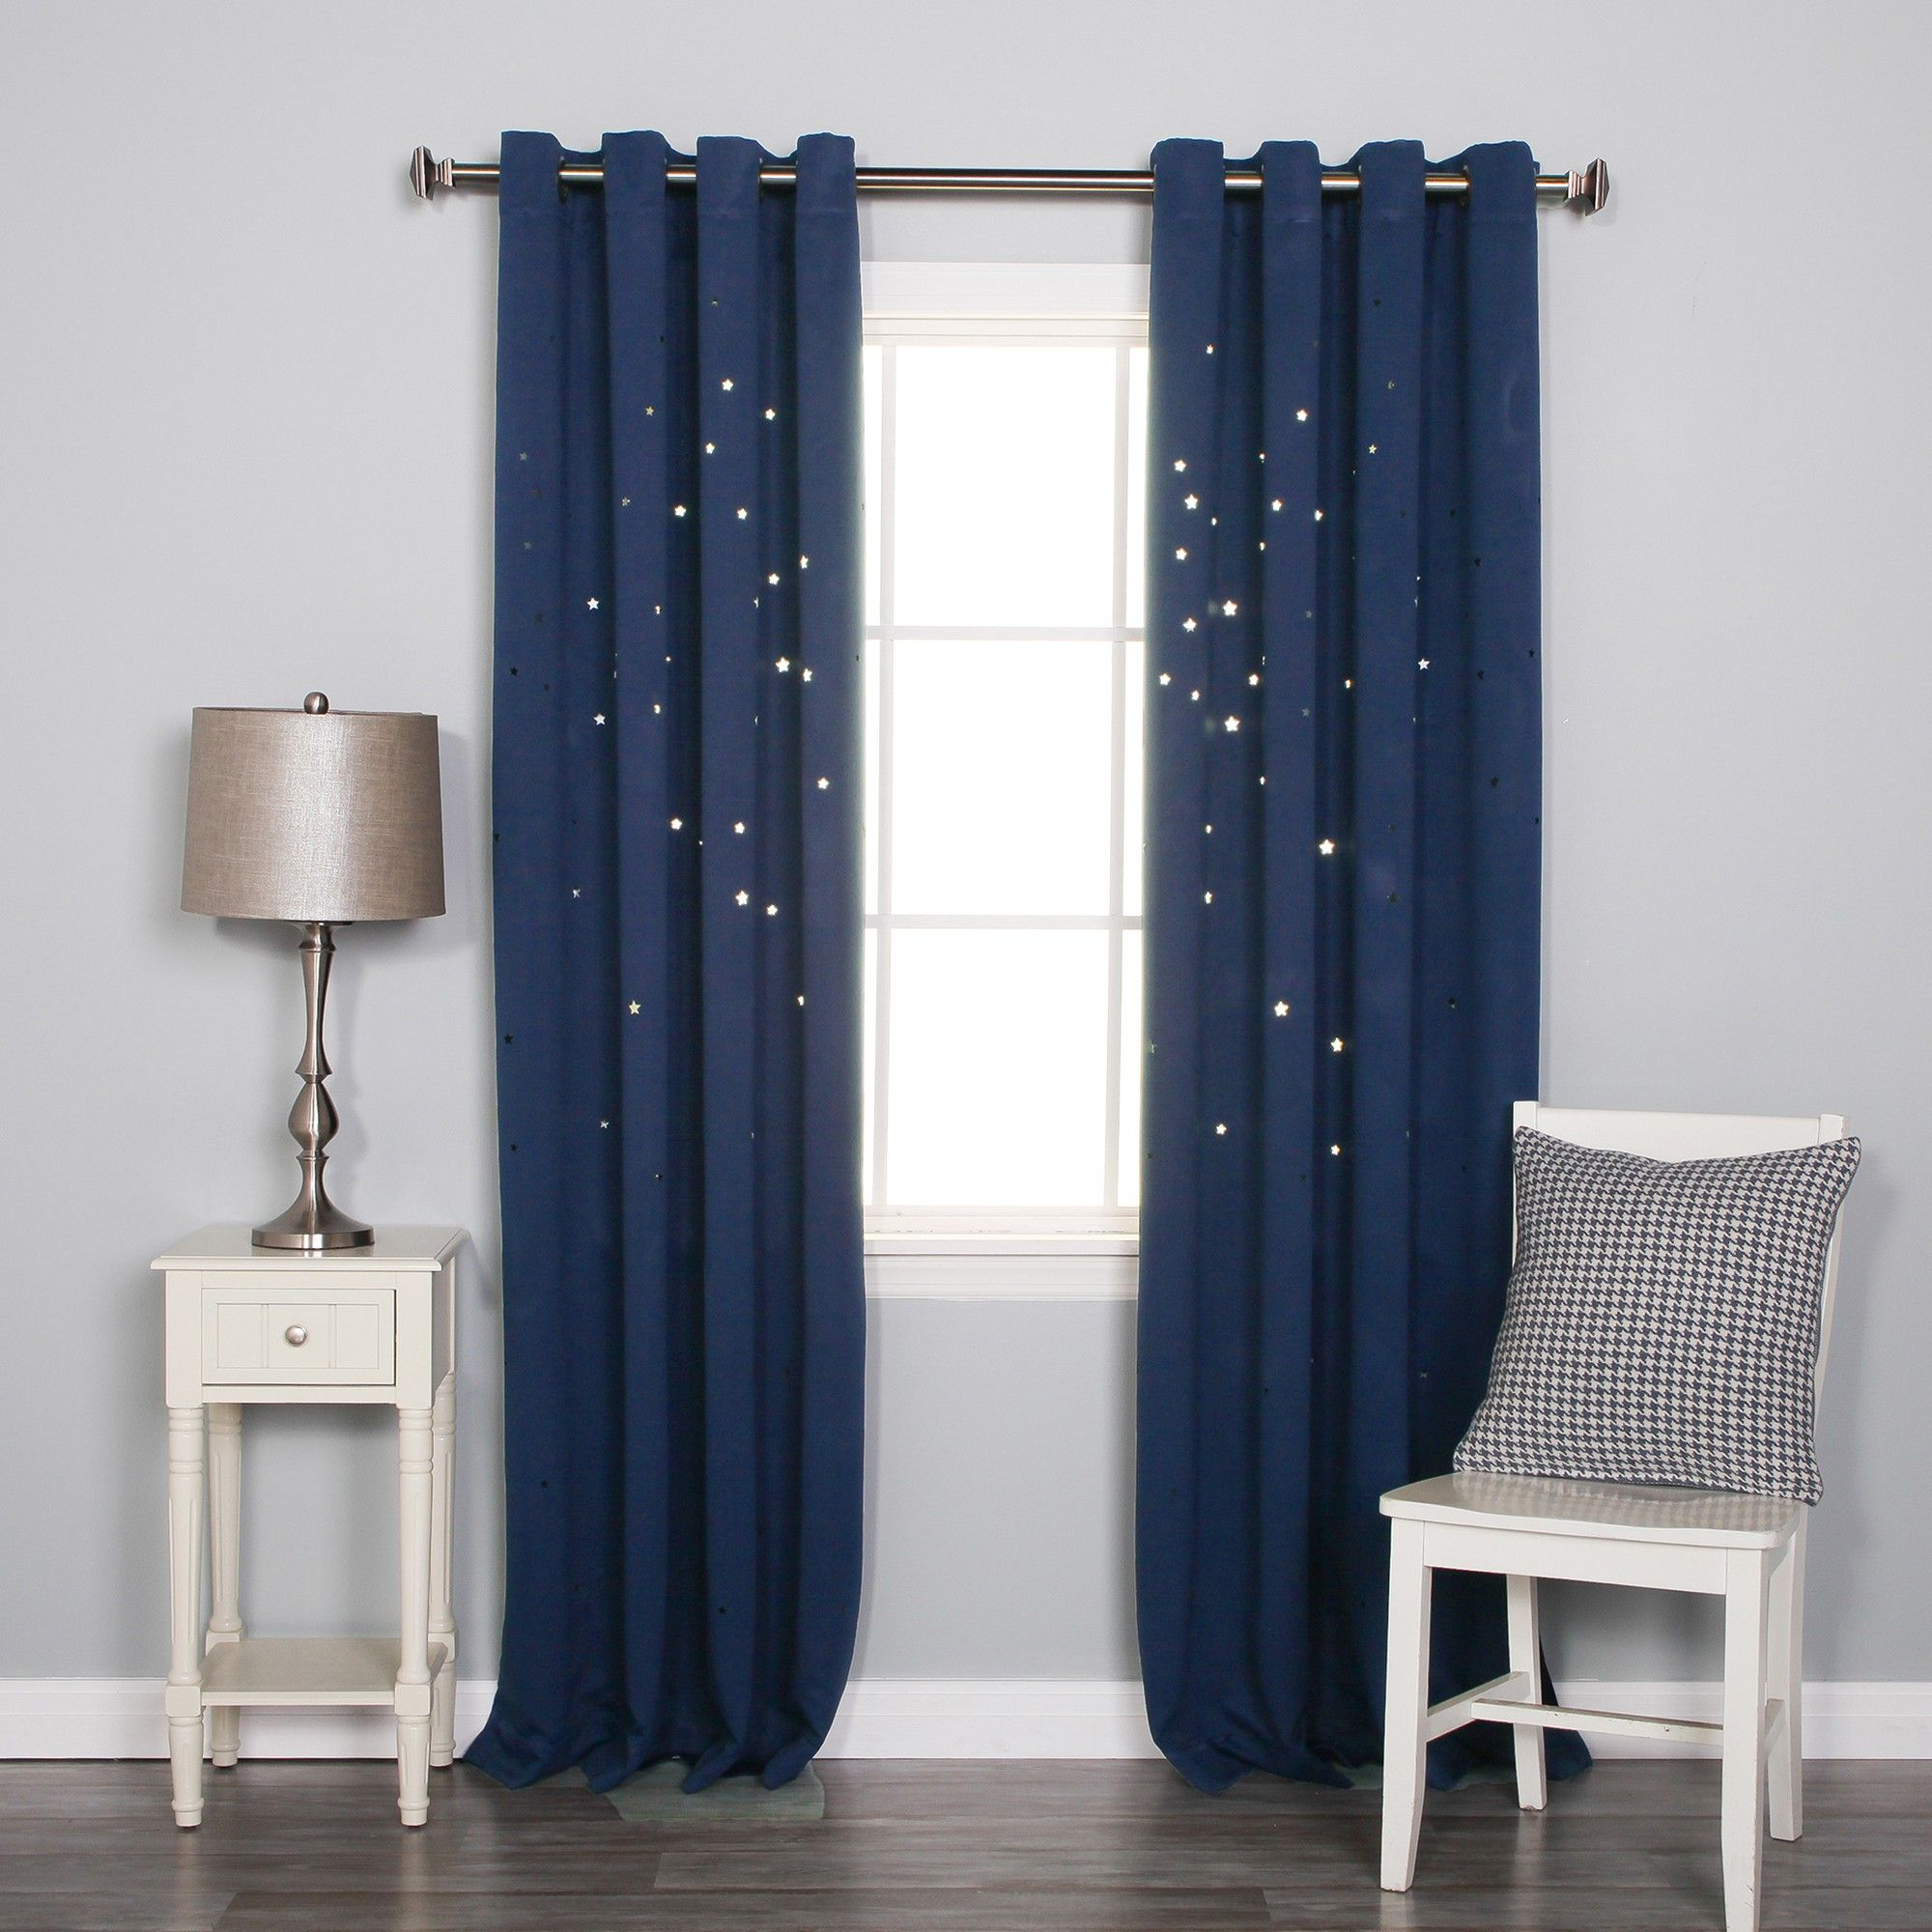 incredible full design curtains curtain navy length elegant blue sheer drapes size of panels photo elaborate